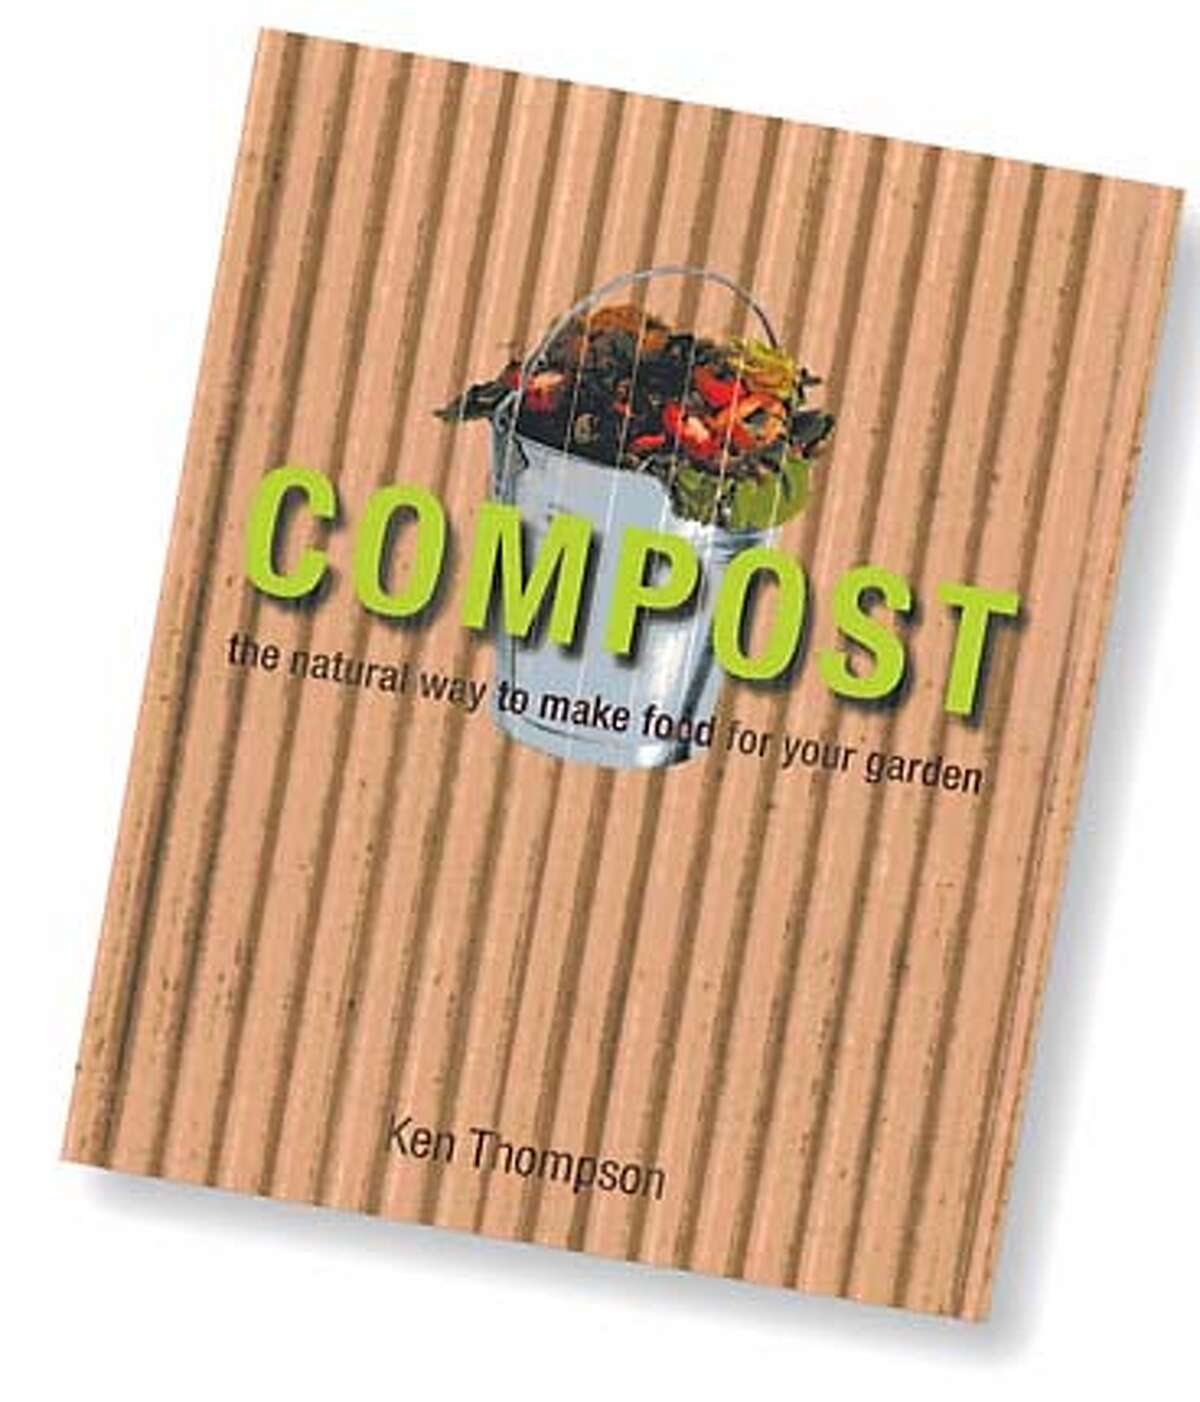 Compost is made to seem almost easy to achieve by plant ecologist Ken Thompson in his book, Compost: The Natural Way to Make Food for Your Garden.''